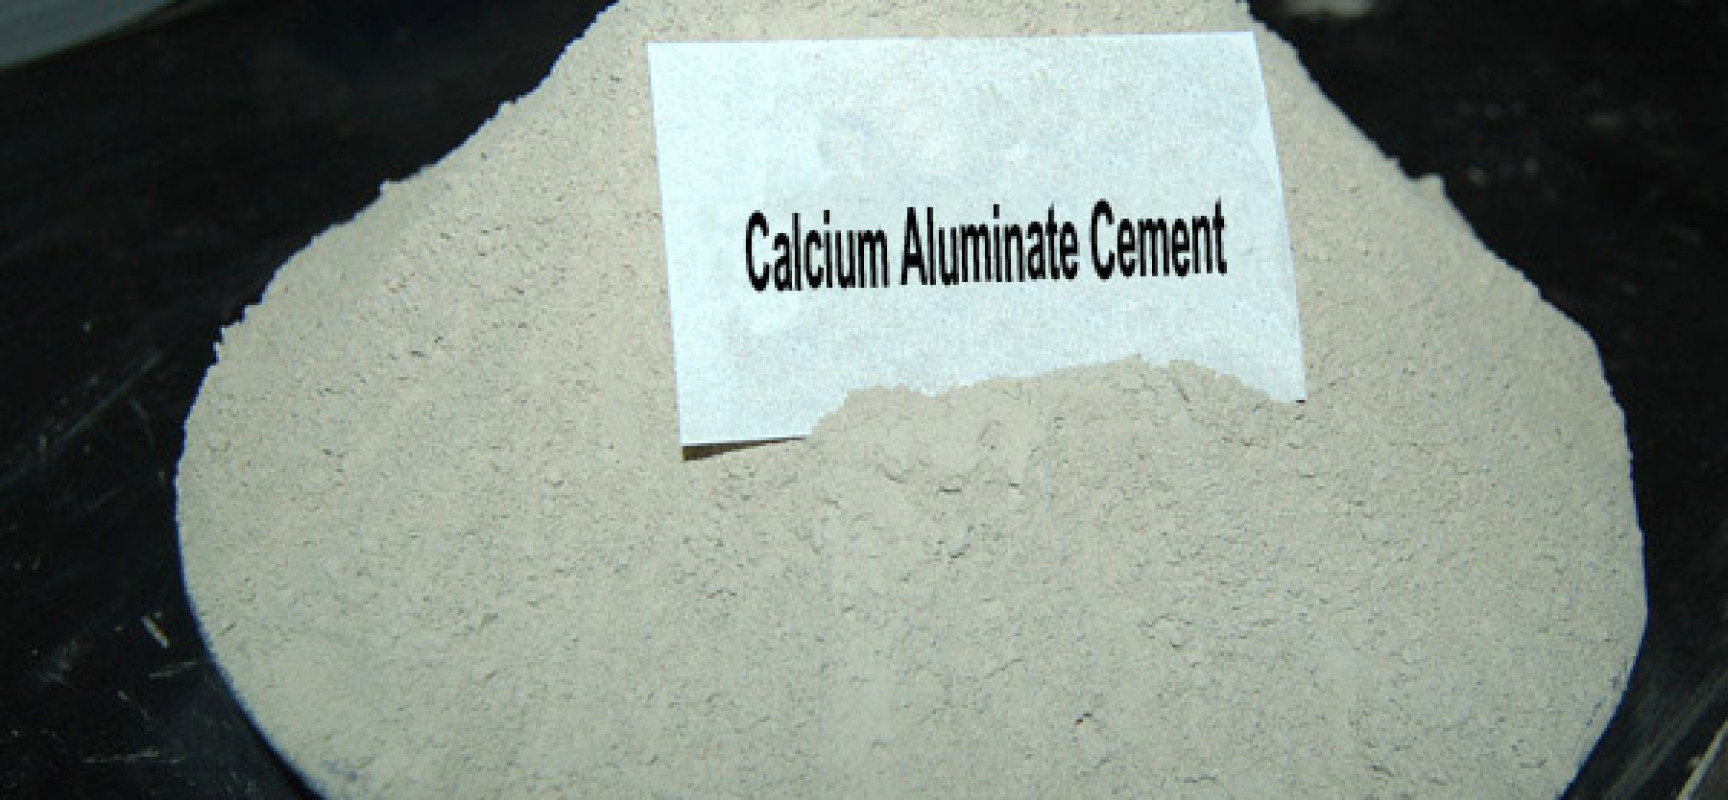 Calcium Aluminate Cement : What is calcium aluminate cement the function and